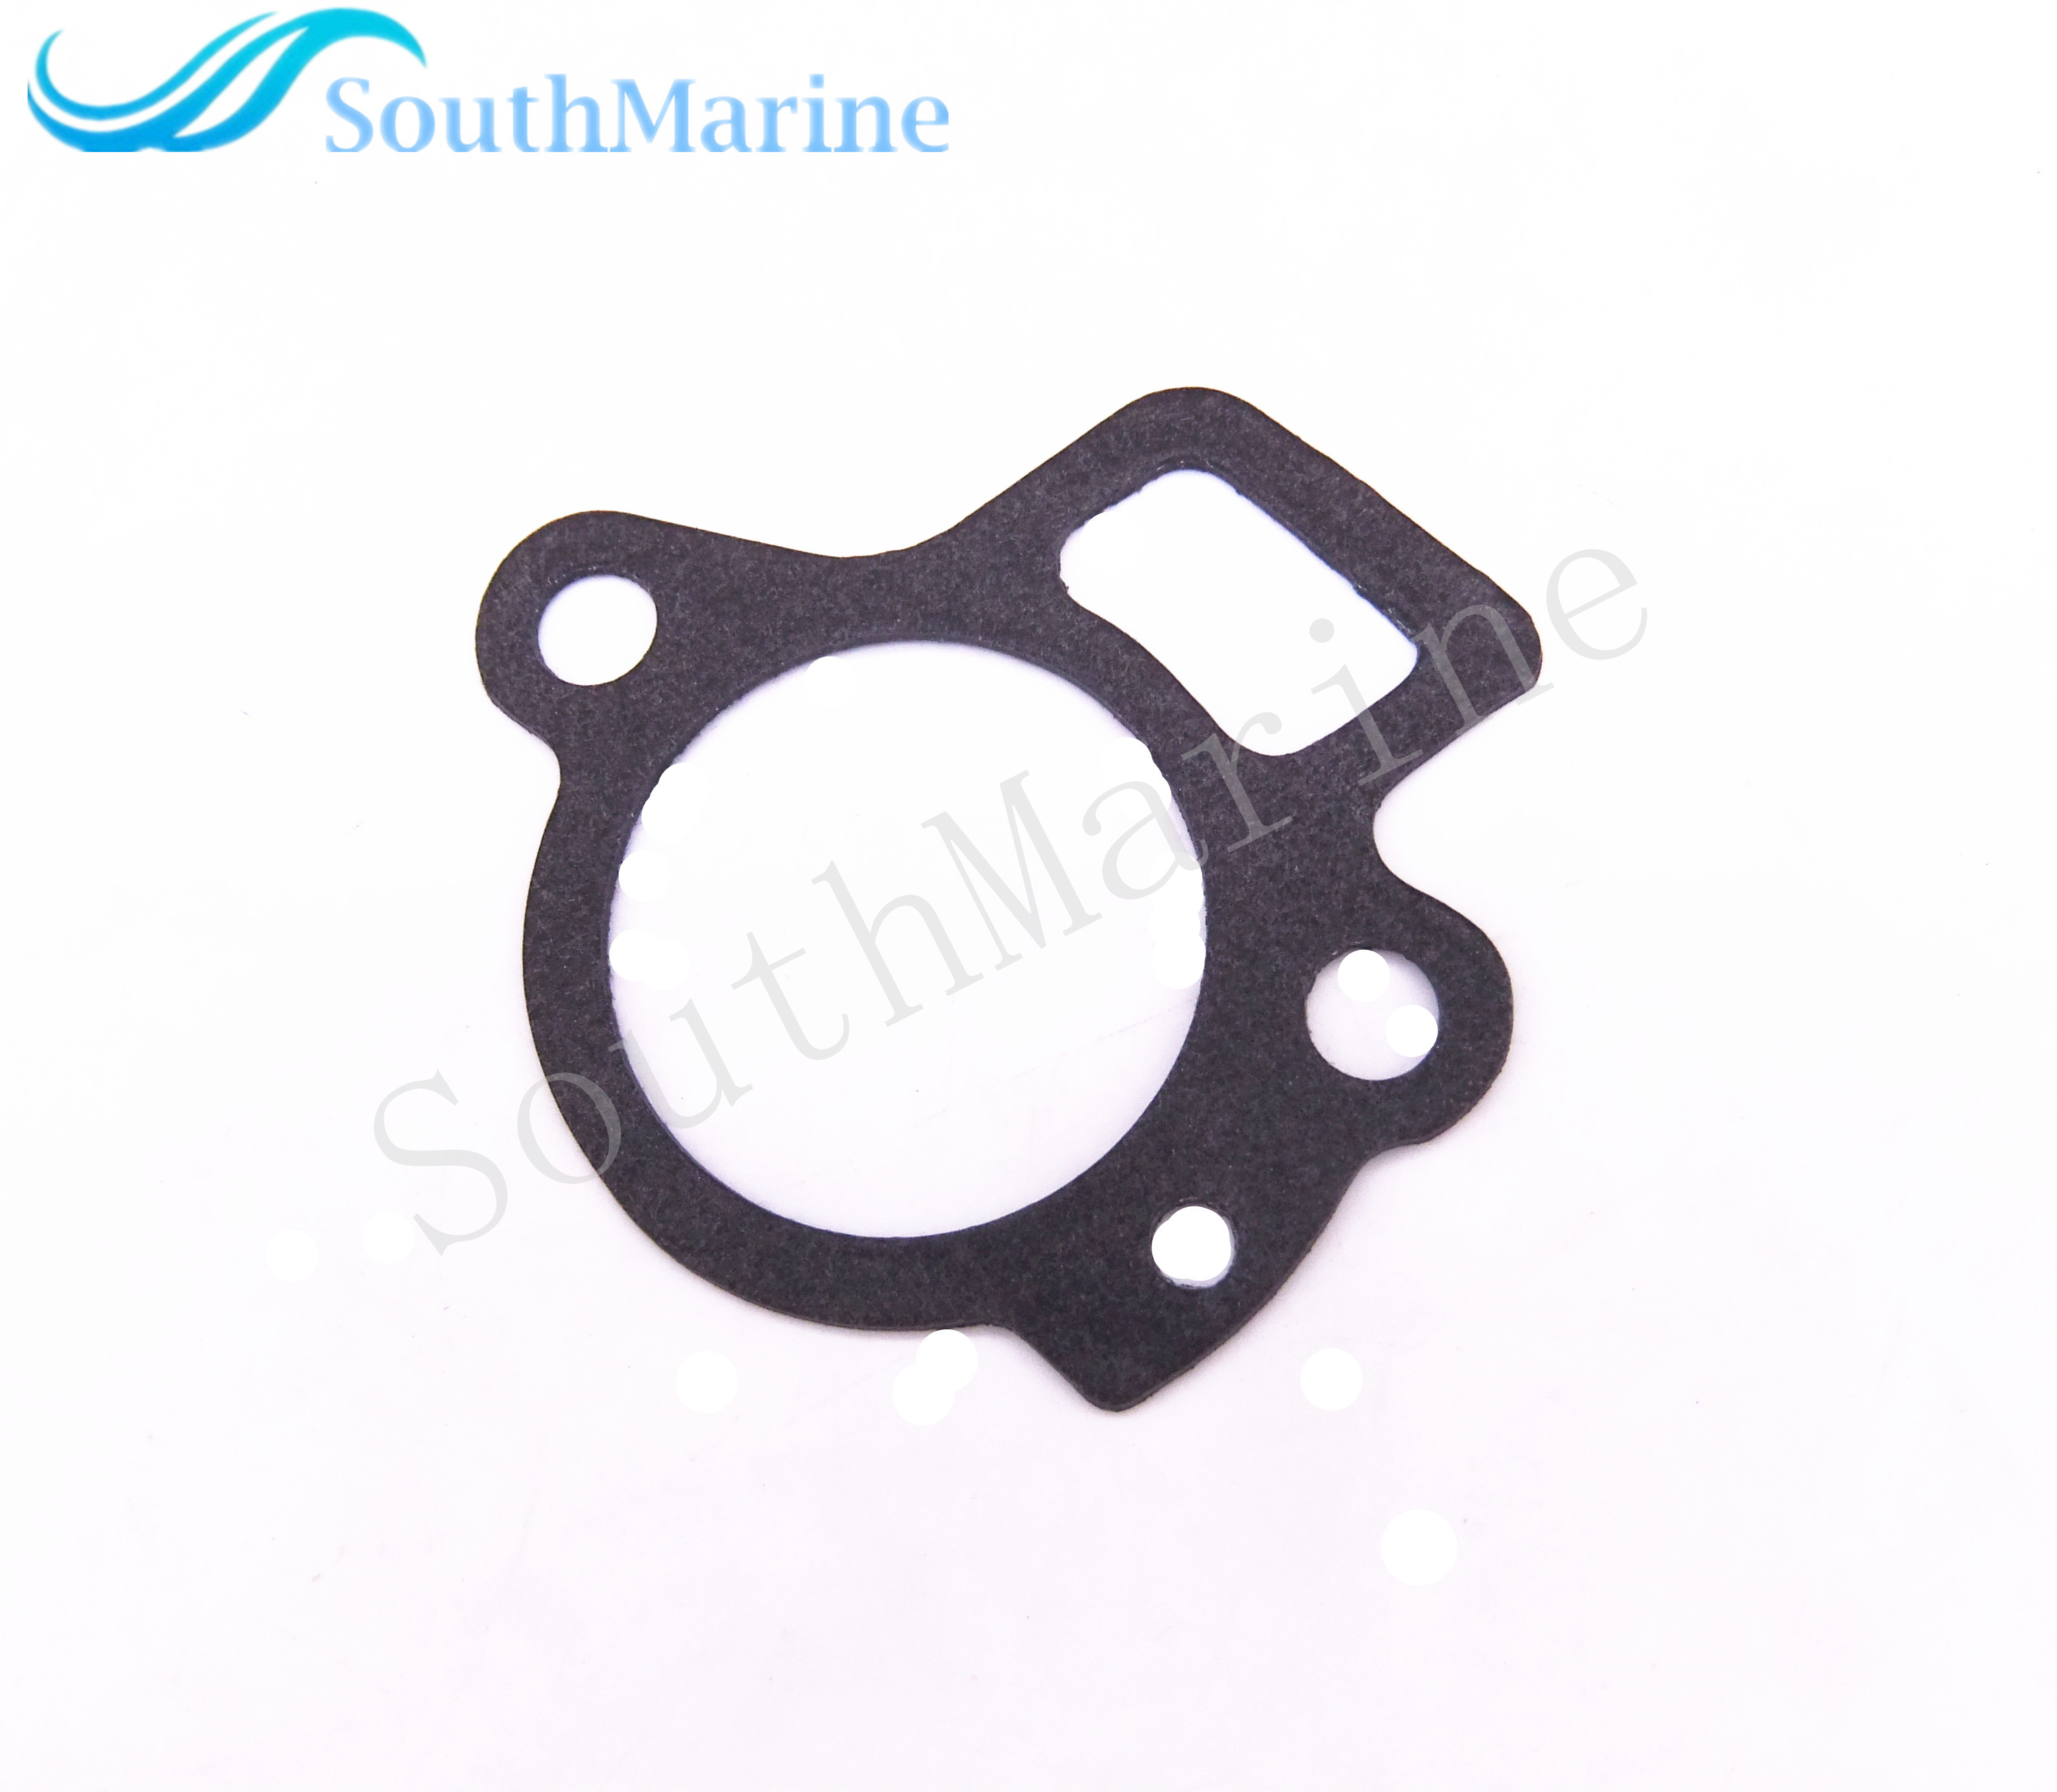 Outboard Engine F15-01.01.00.11 Thermostat Cover Gasket for Hidea 4-Stroke F15 Boat Motor Free Shipping